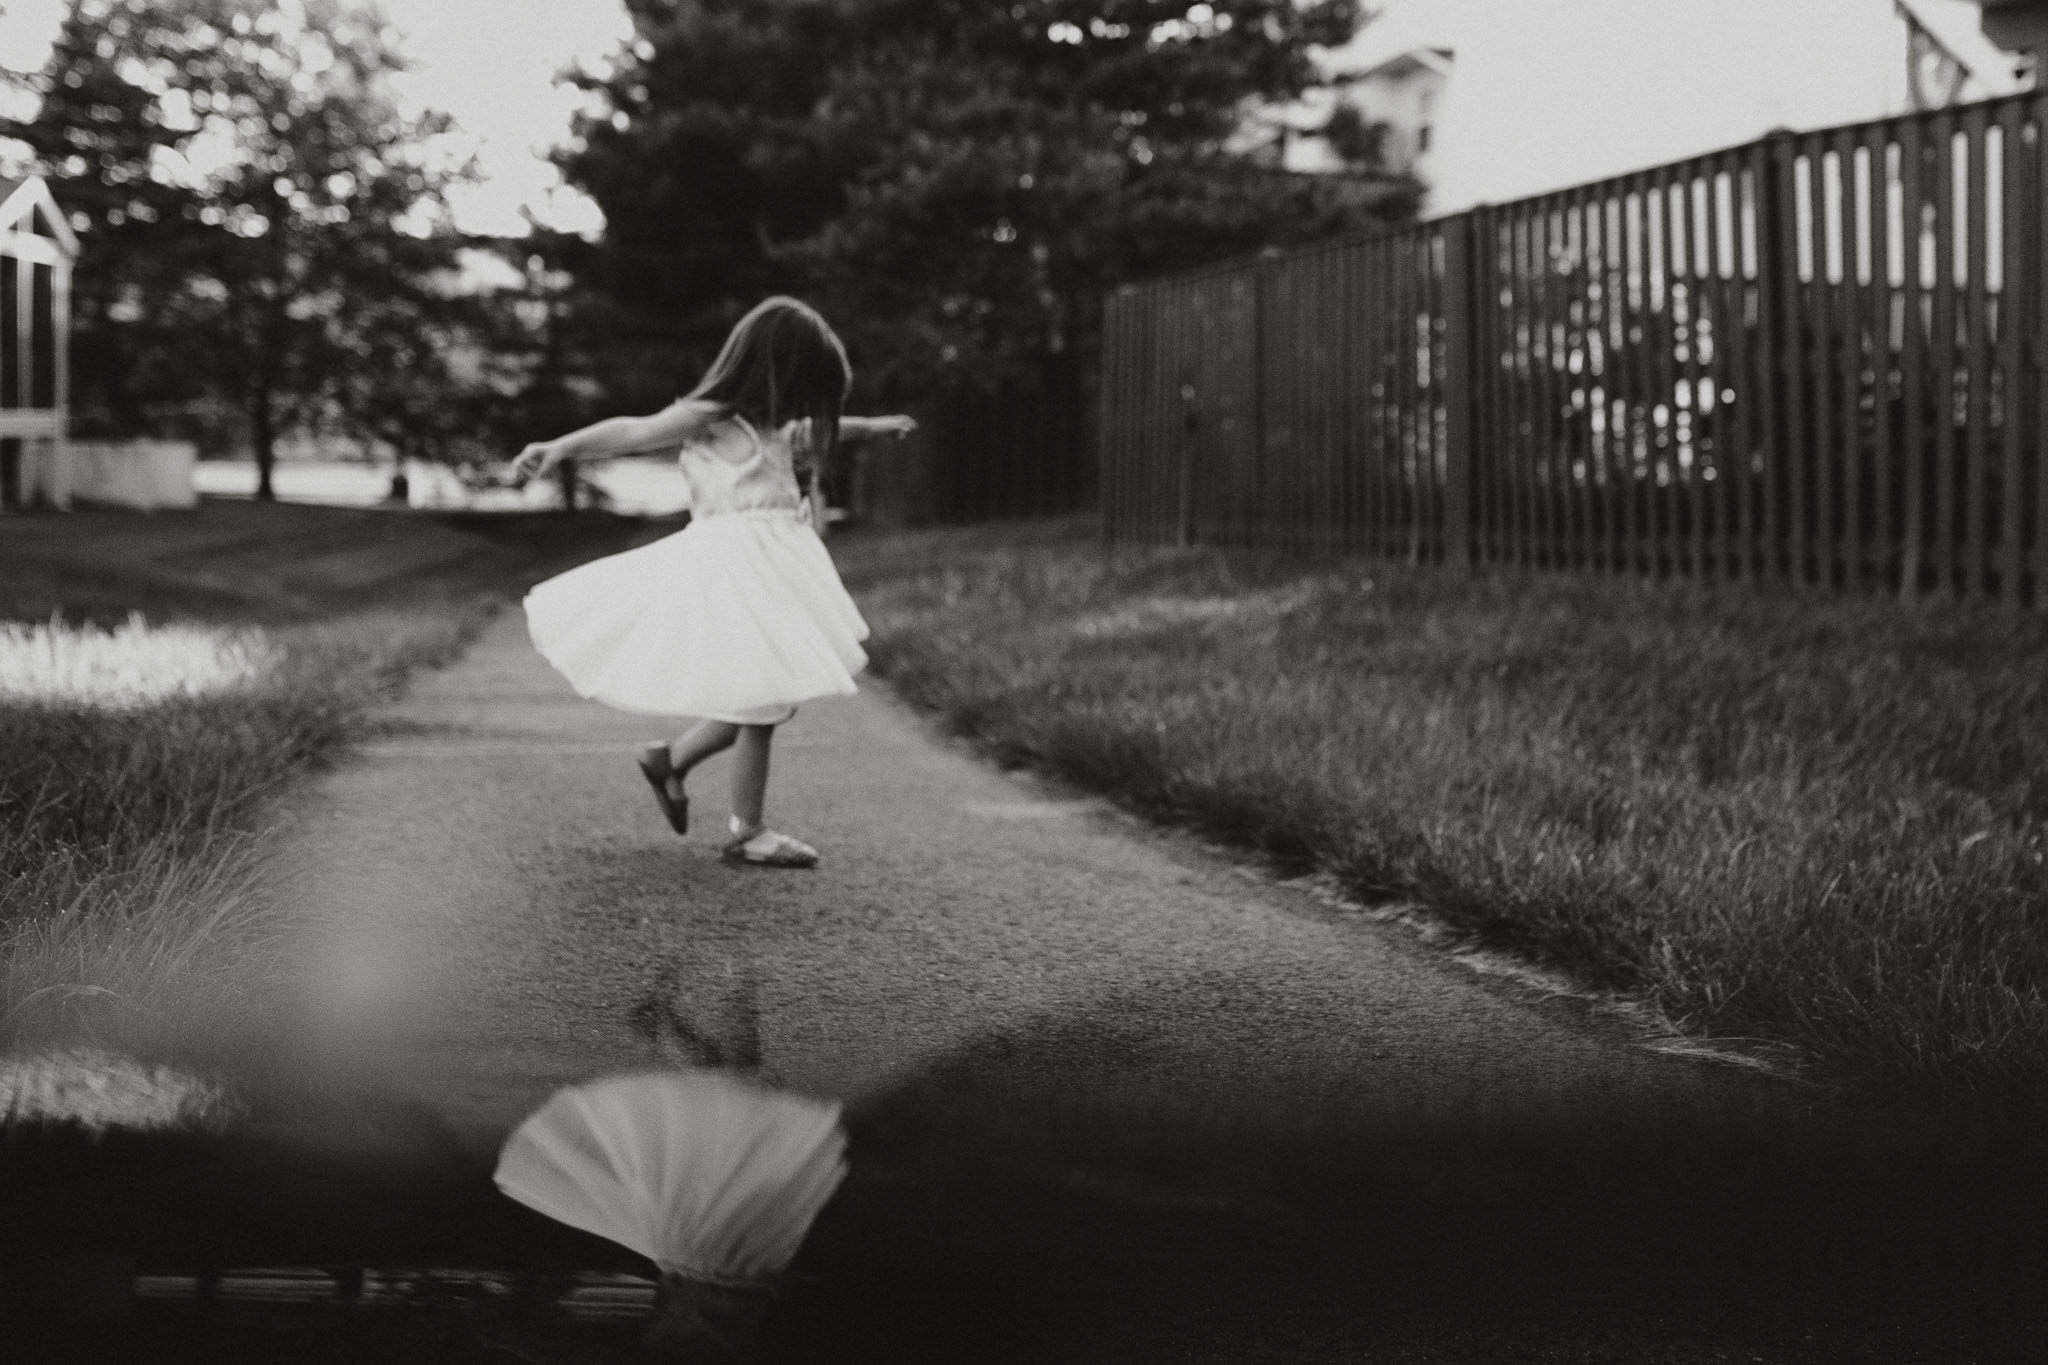 black and white image of a girl in a white dress twirling on a path with her reflection below her